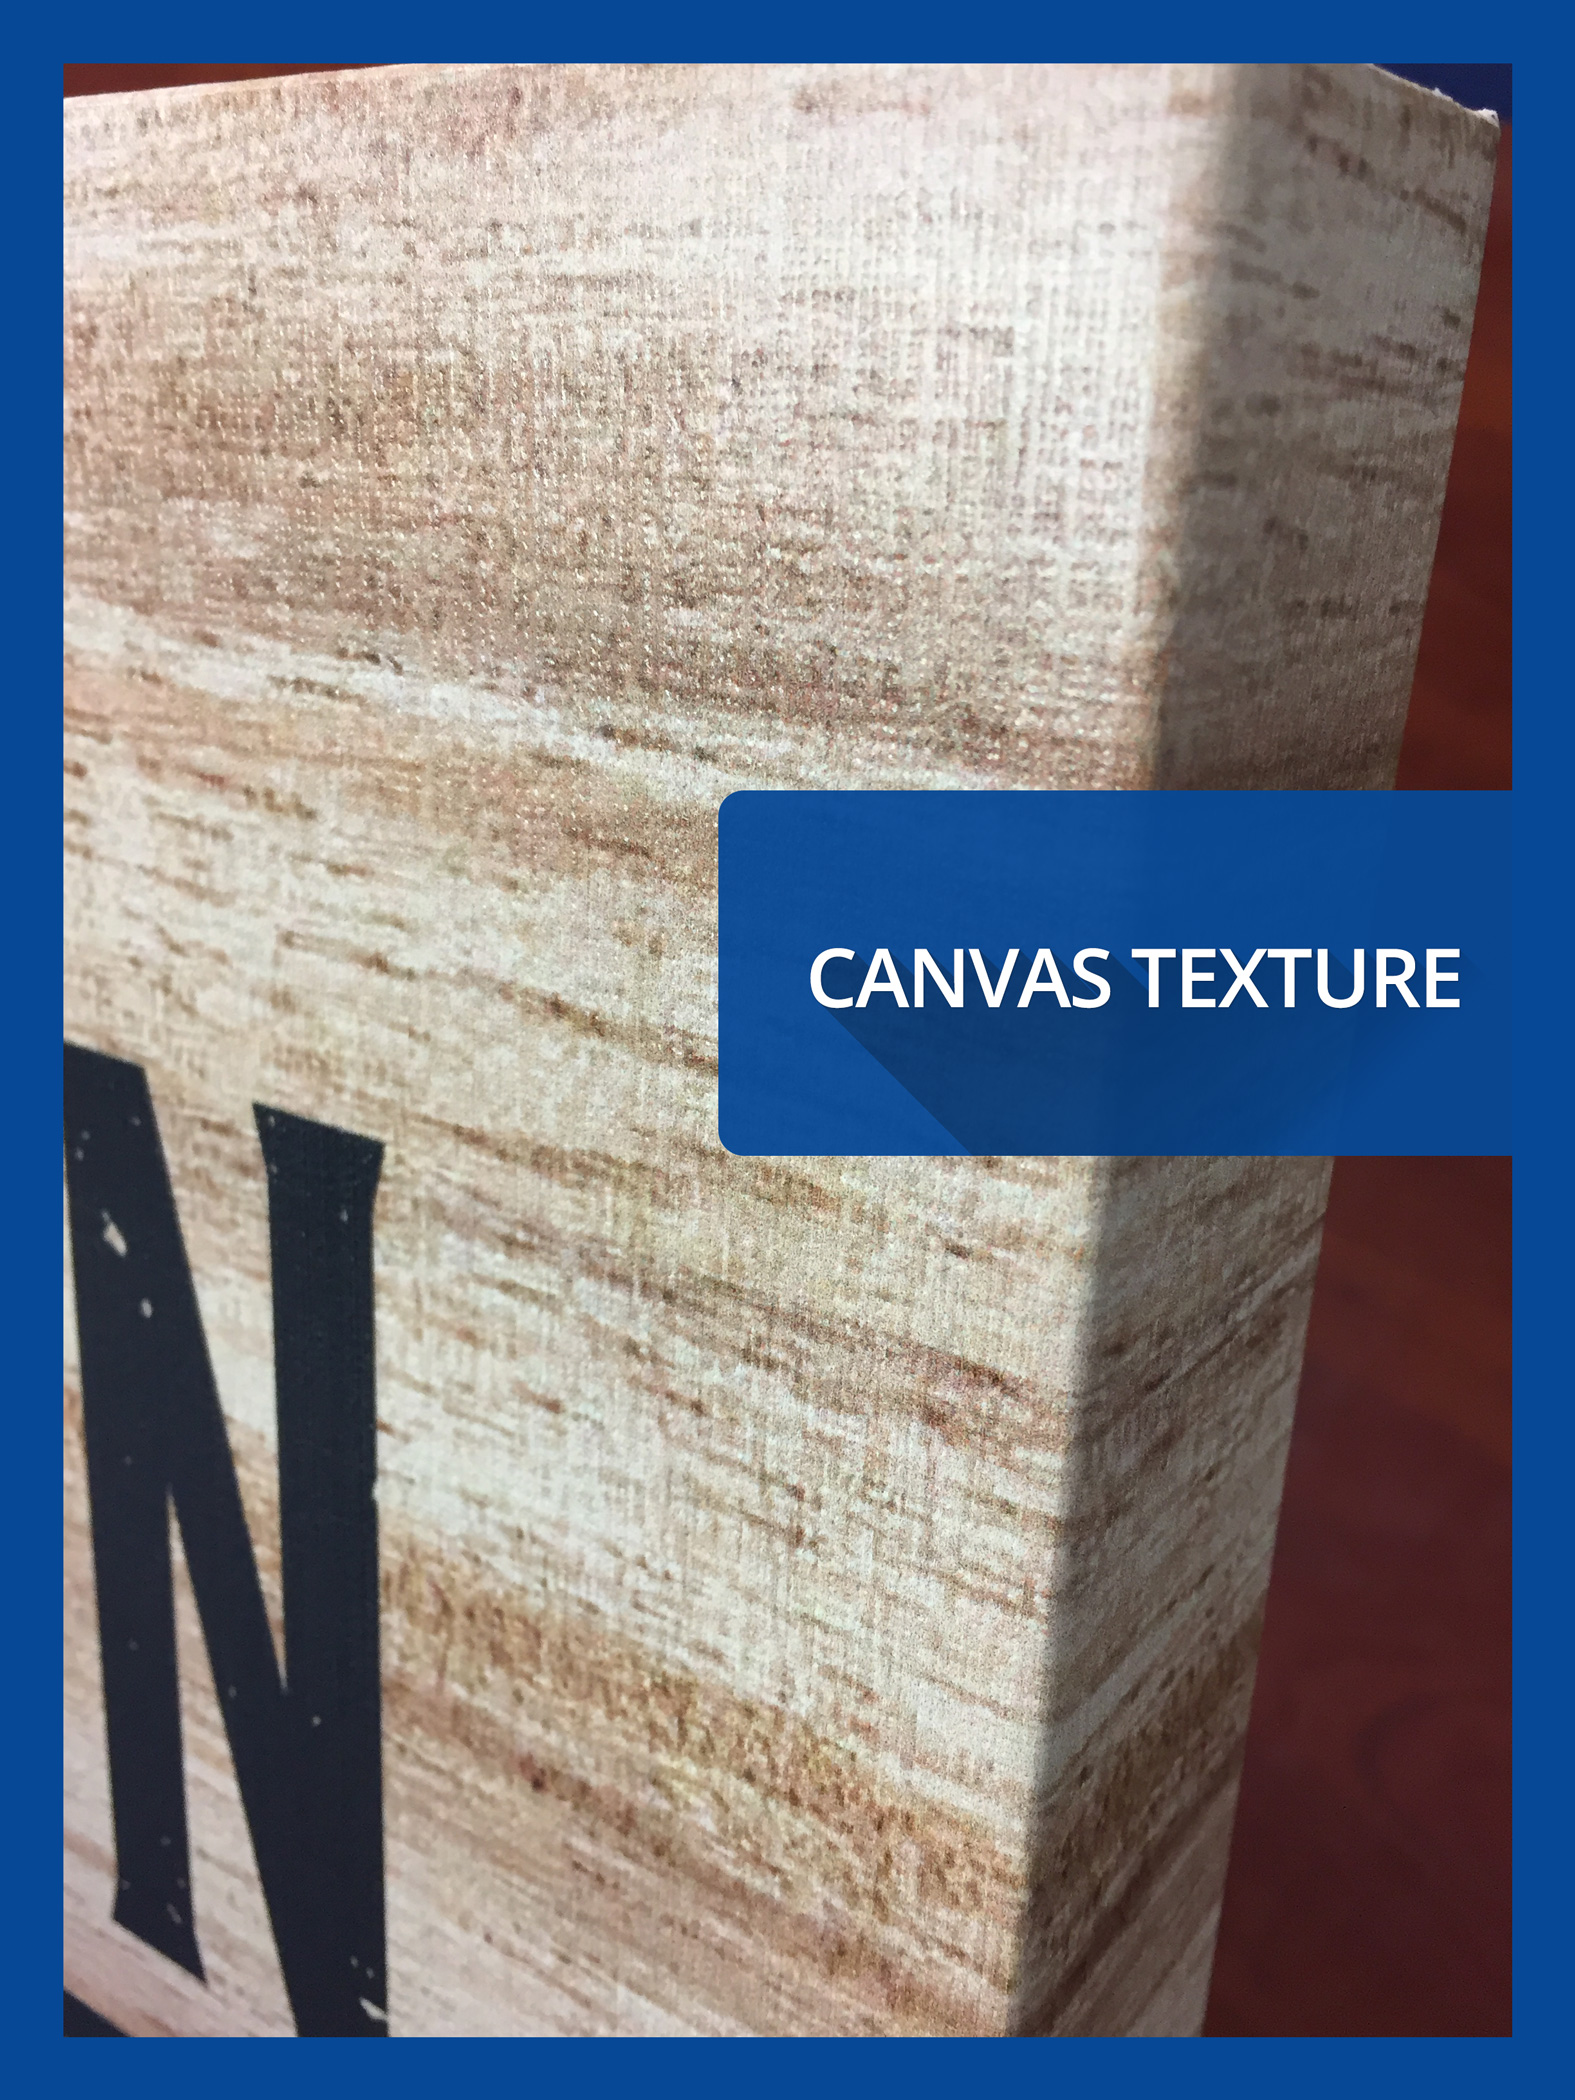 a closeup view of the canvas texture